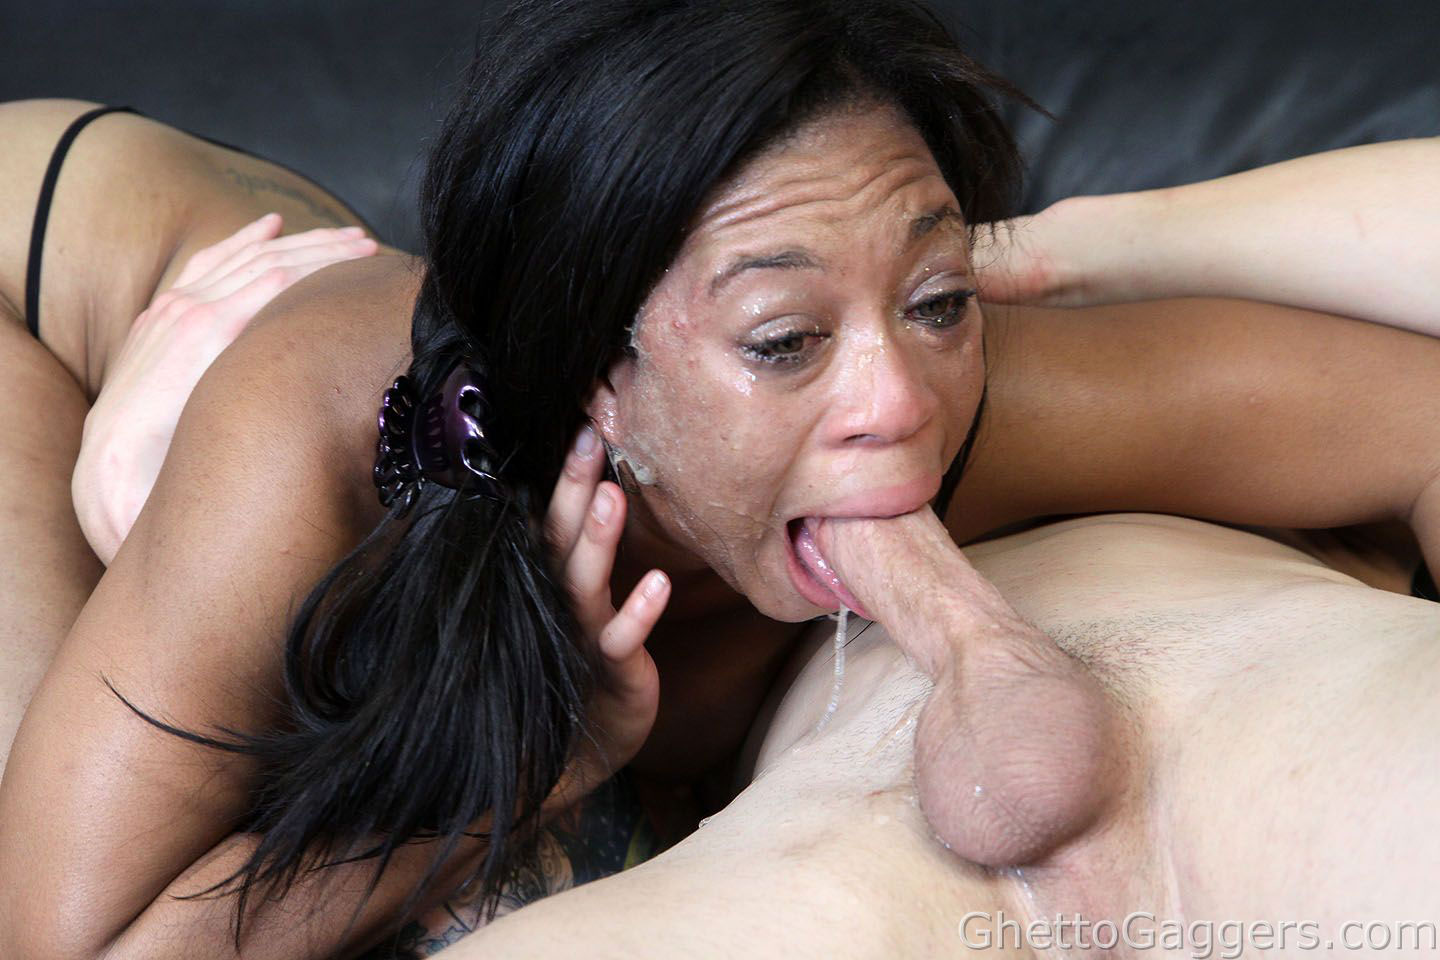 Black ghetto slut sha dynasty getting rough face fucking